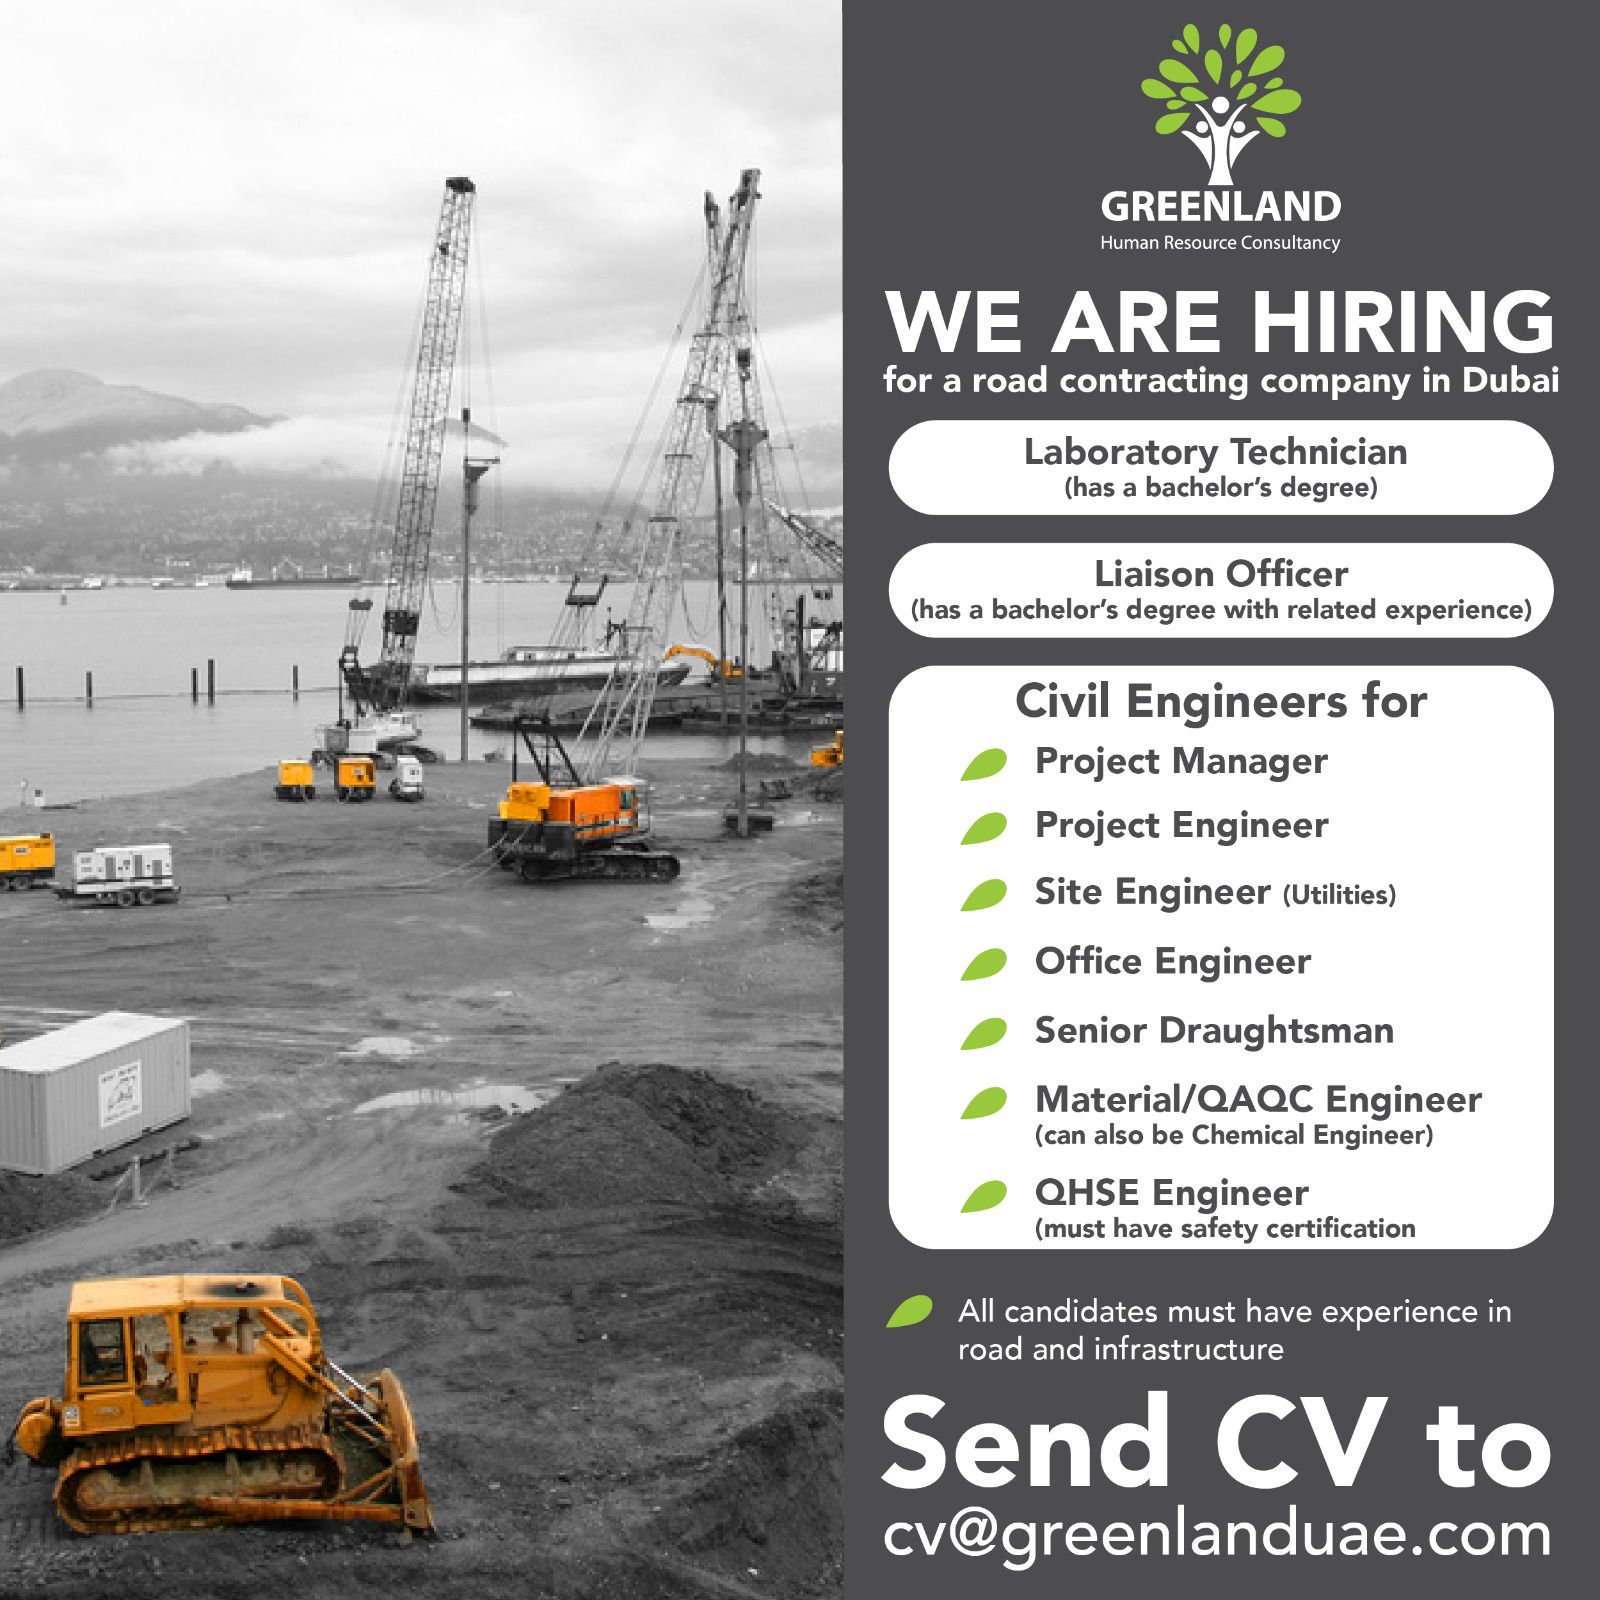 We are hiring for a road contracting company in Dubai